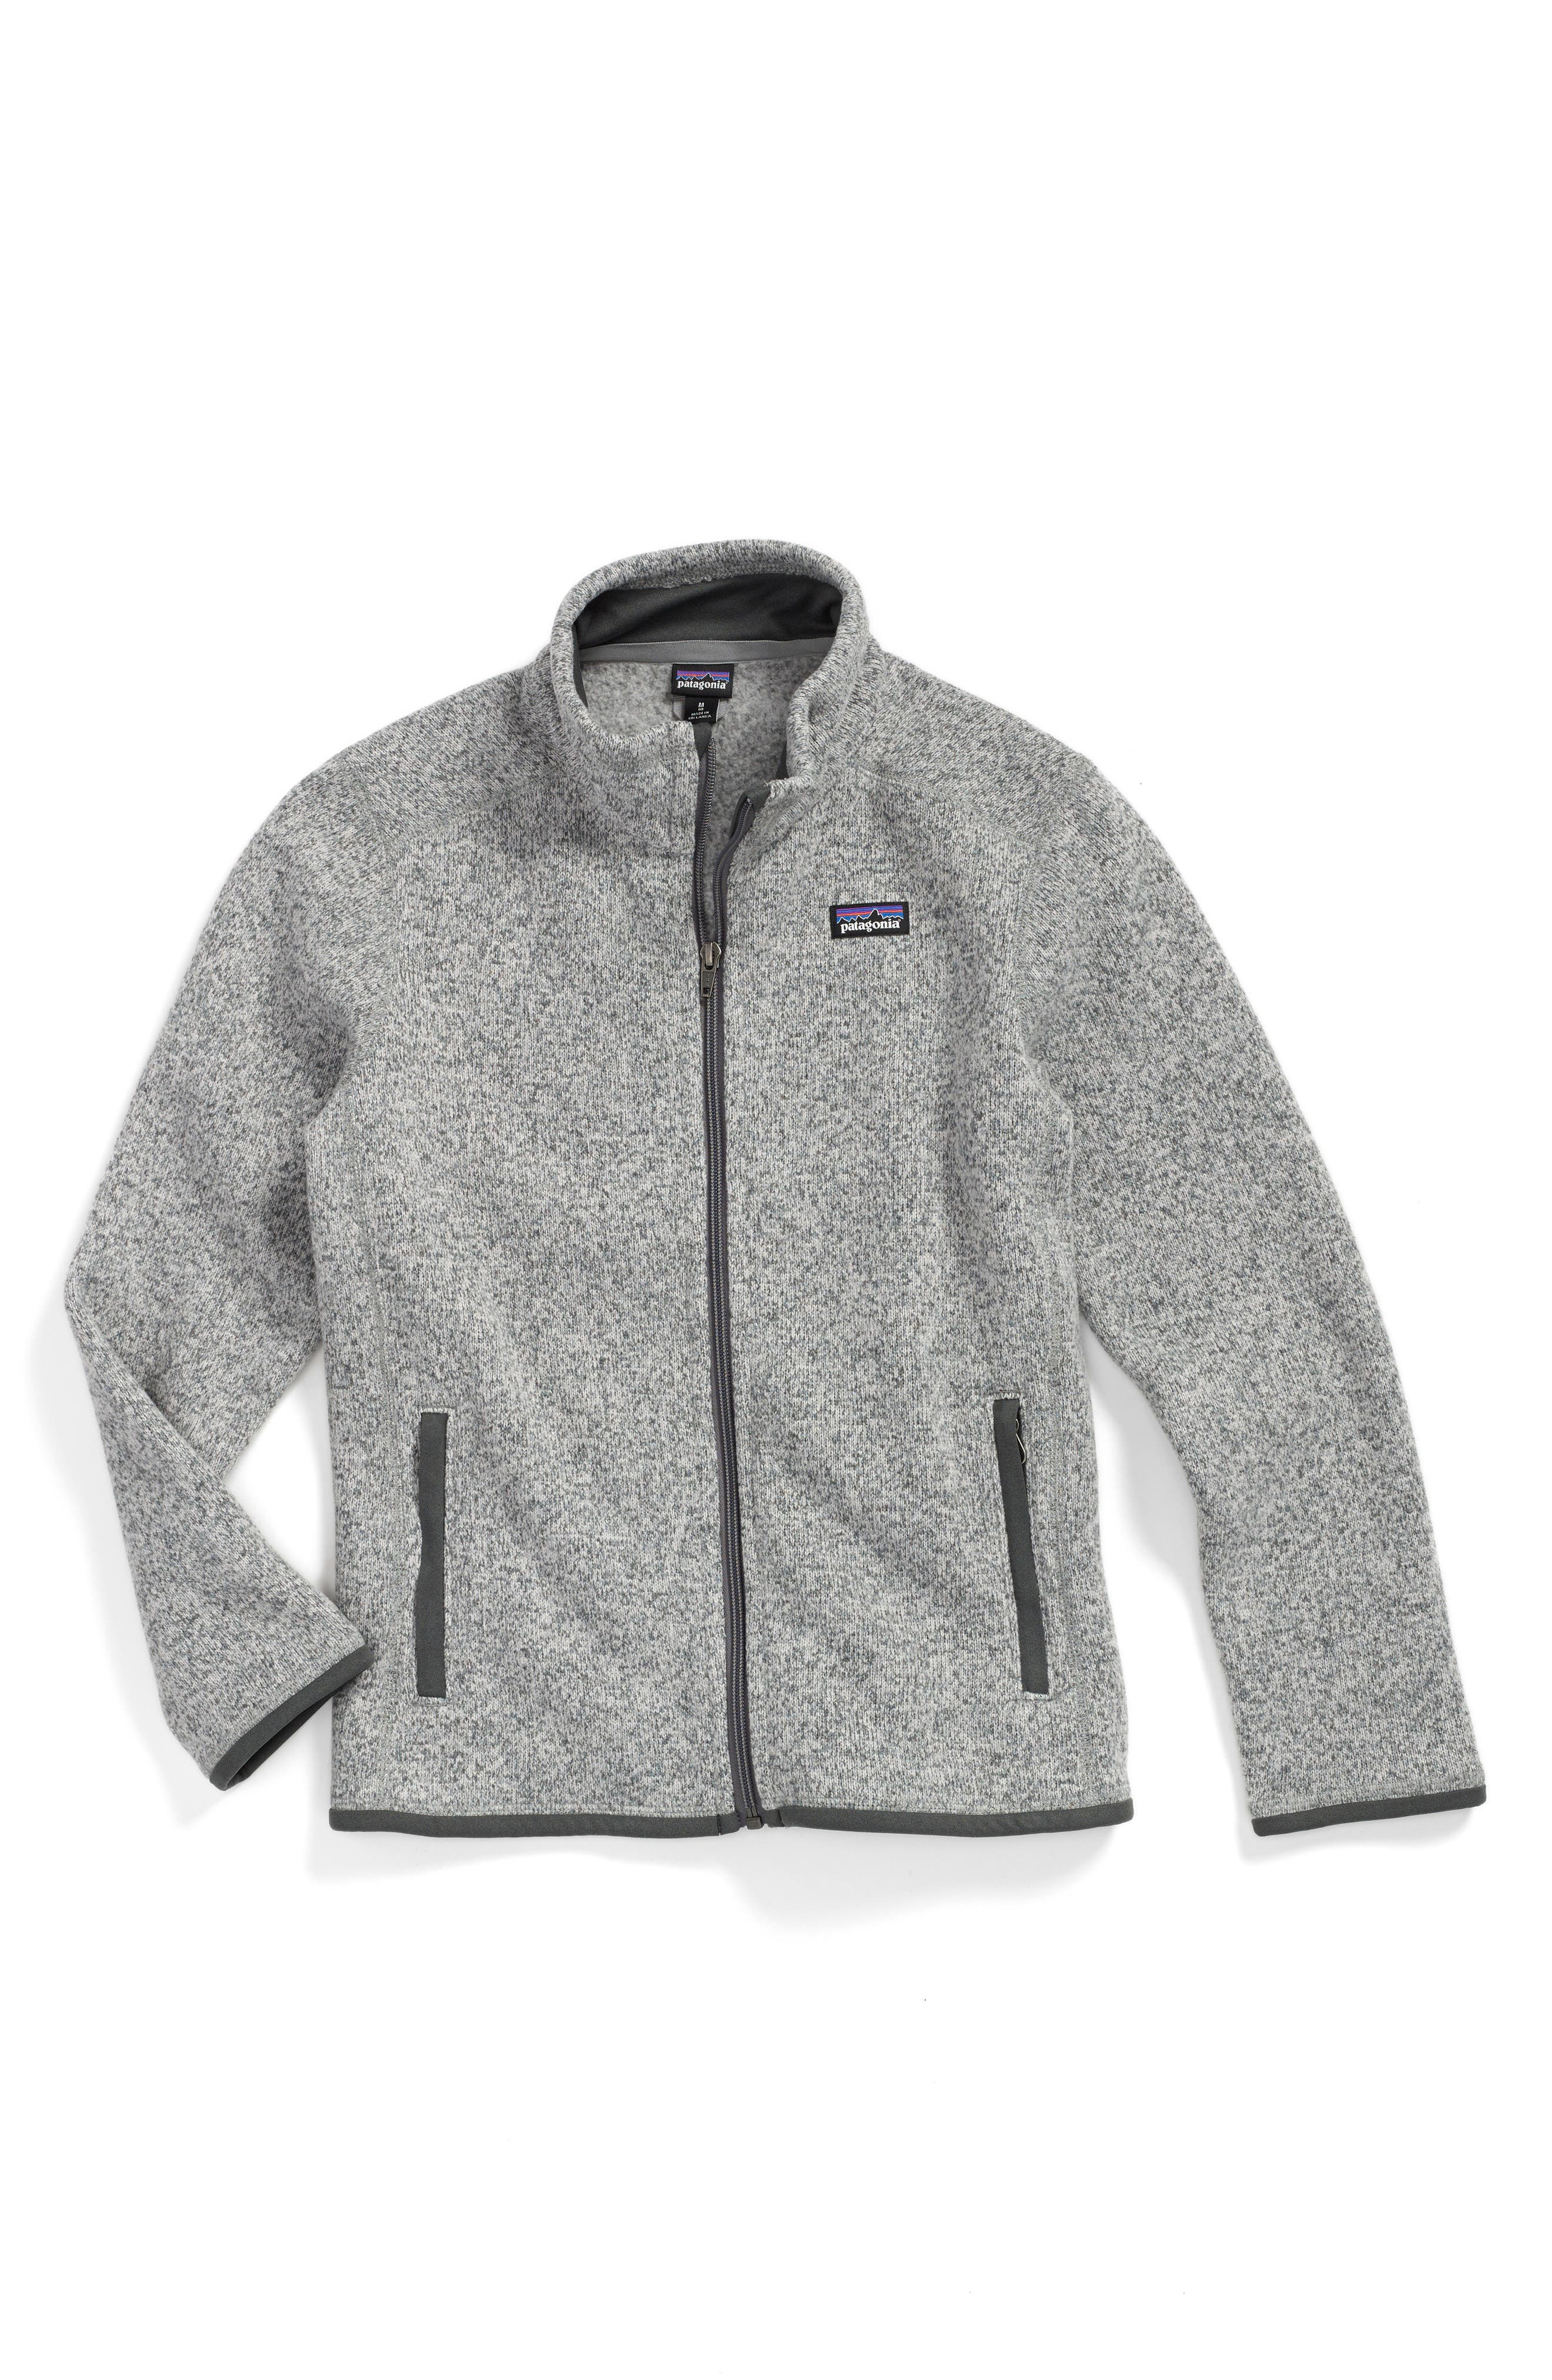 Better Sweater Jacket,                         Main,                         color, 020